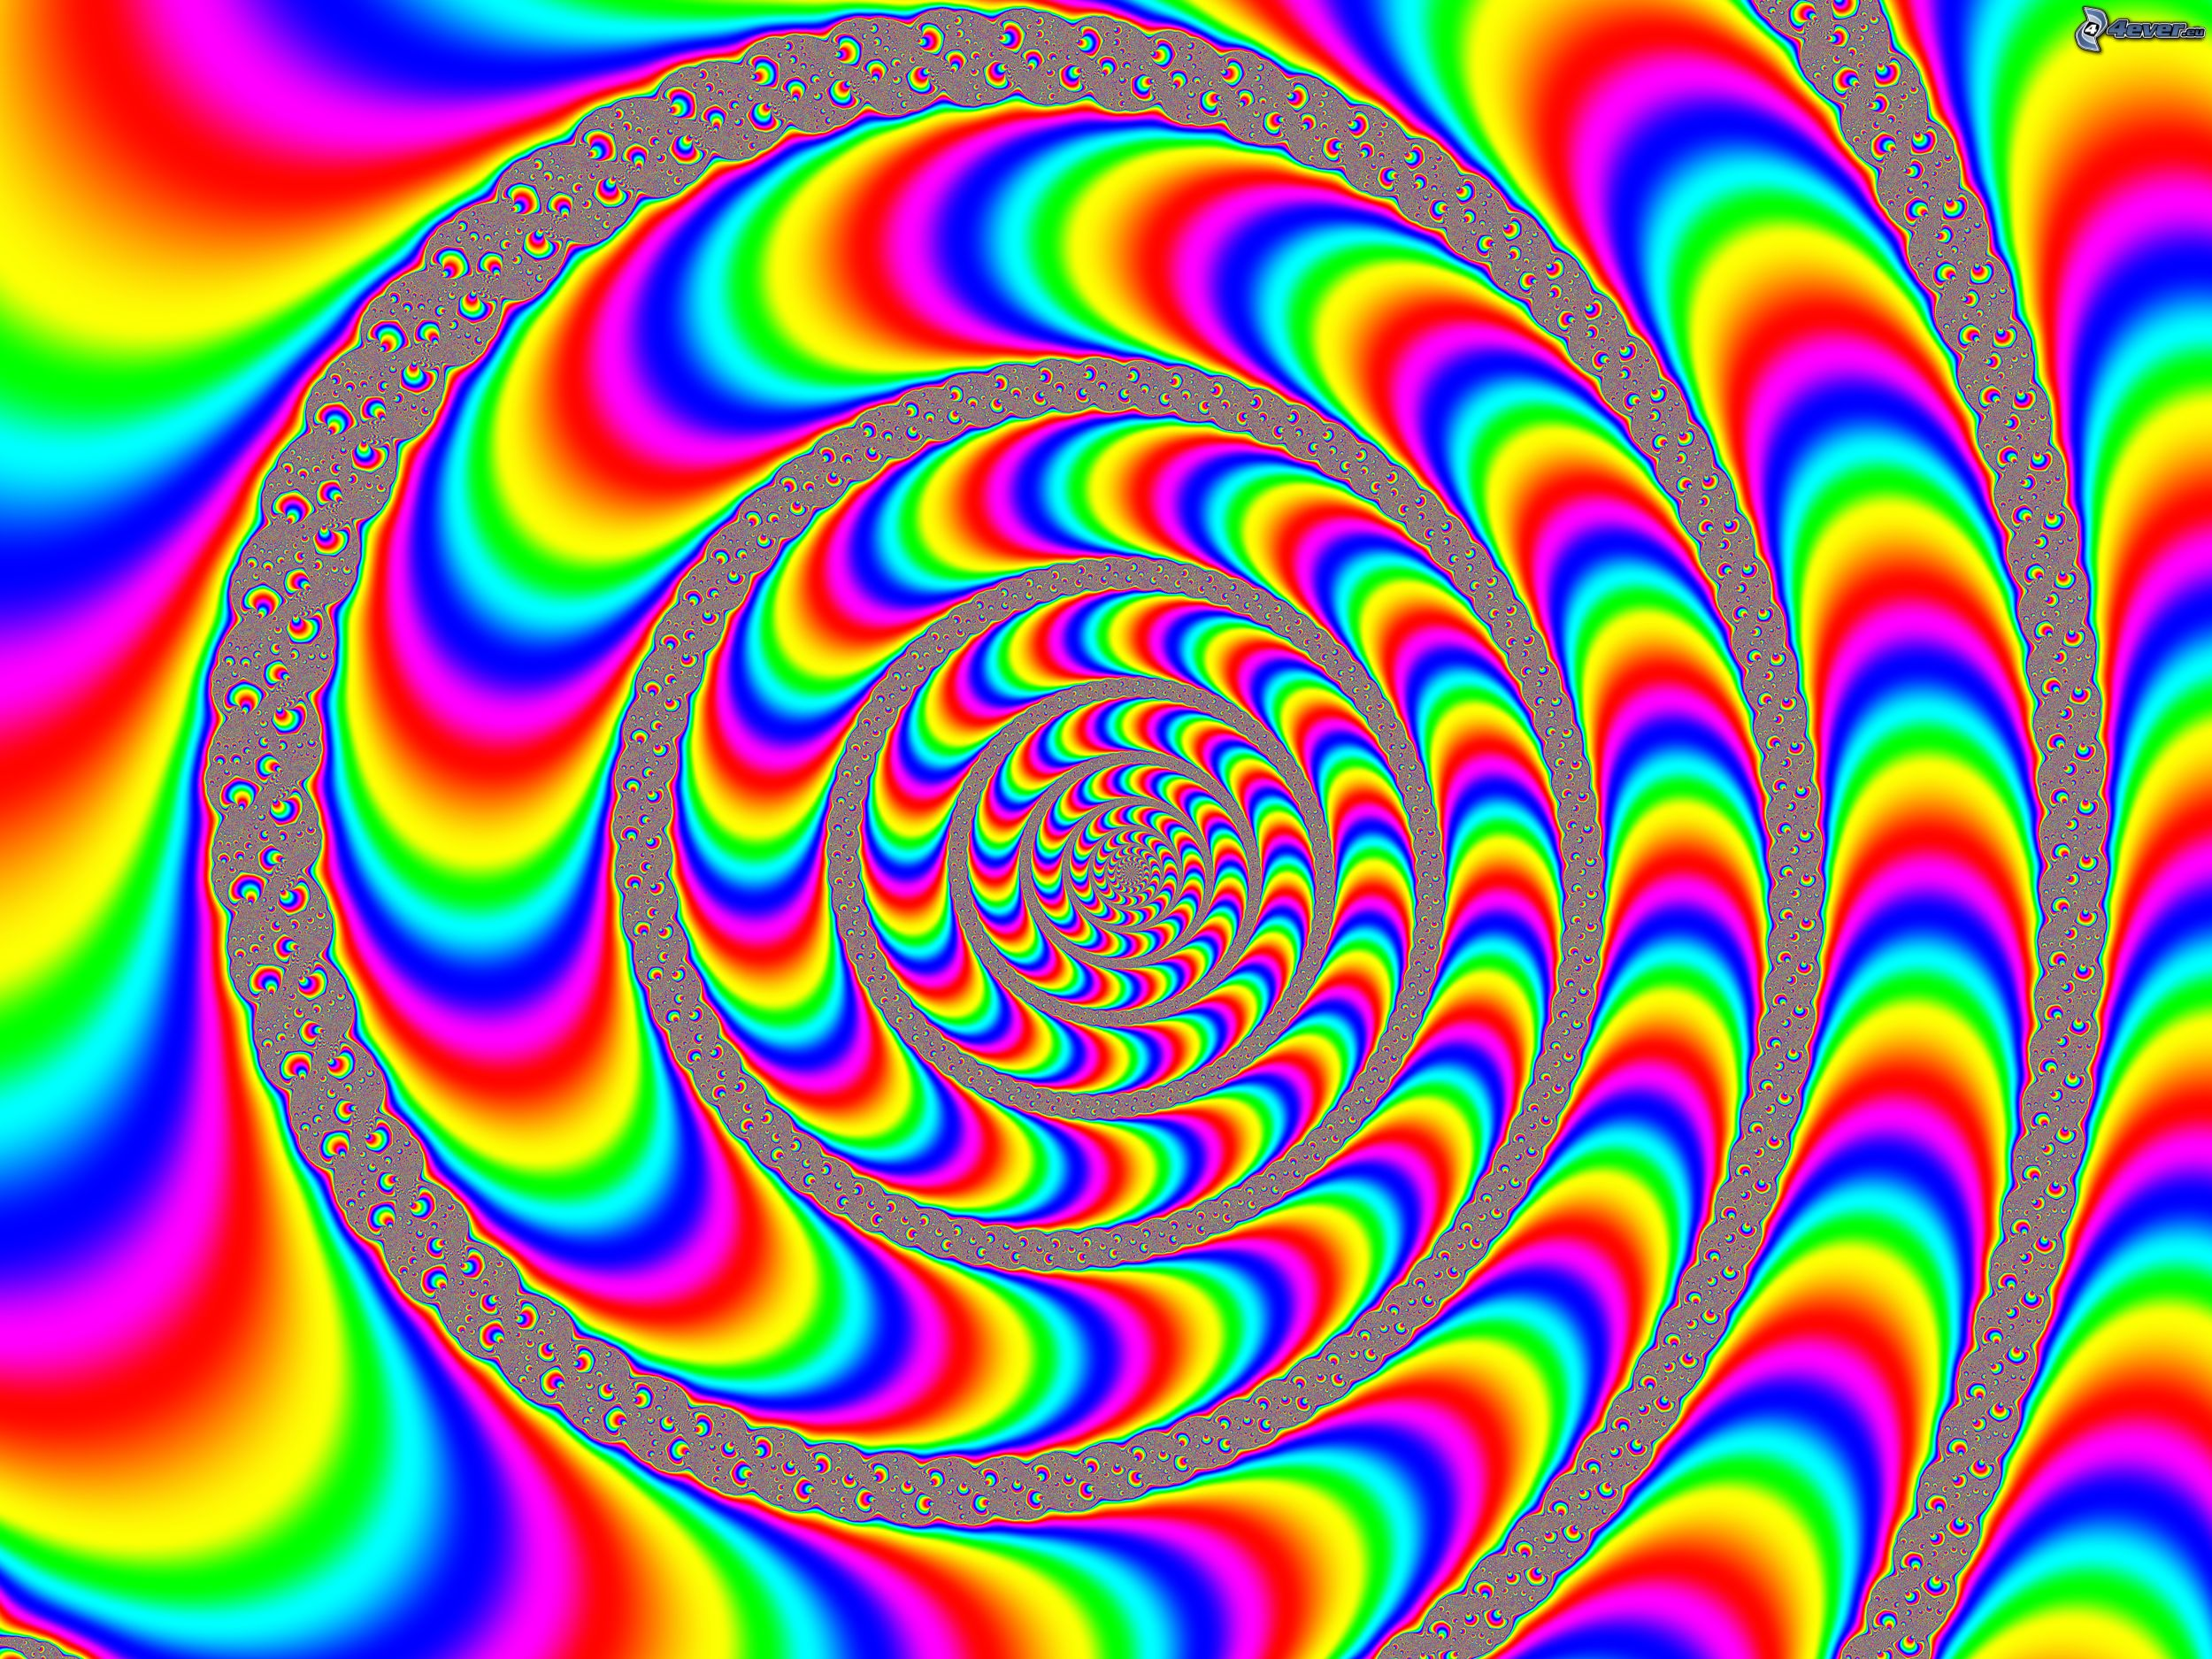 animated optical illusion color spectrum spirals optical illusions wallpaper